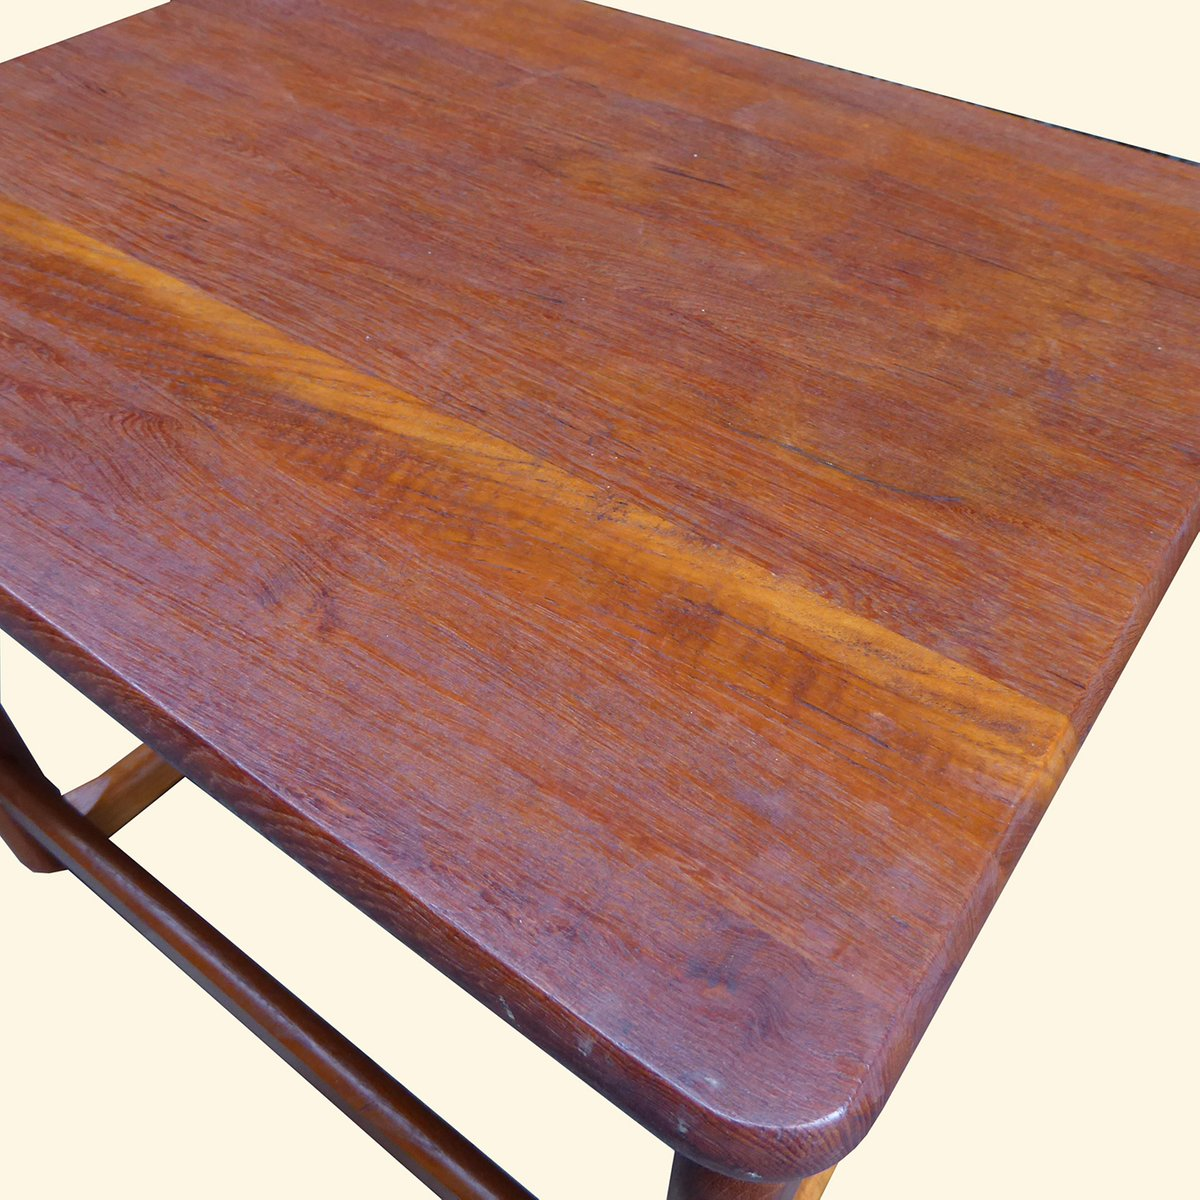 Teak Coffee Table South Africa: Danish Teak Coffee Table, 1950s For Sale At Pamono